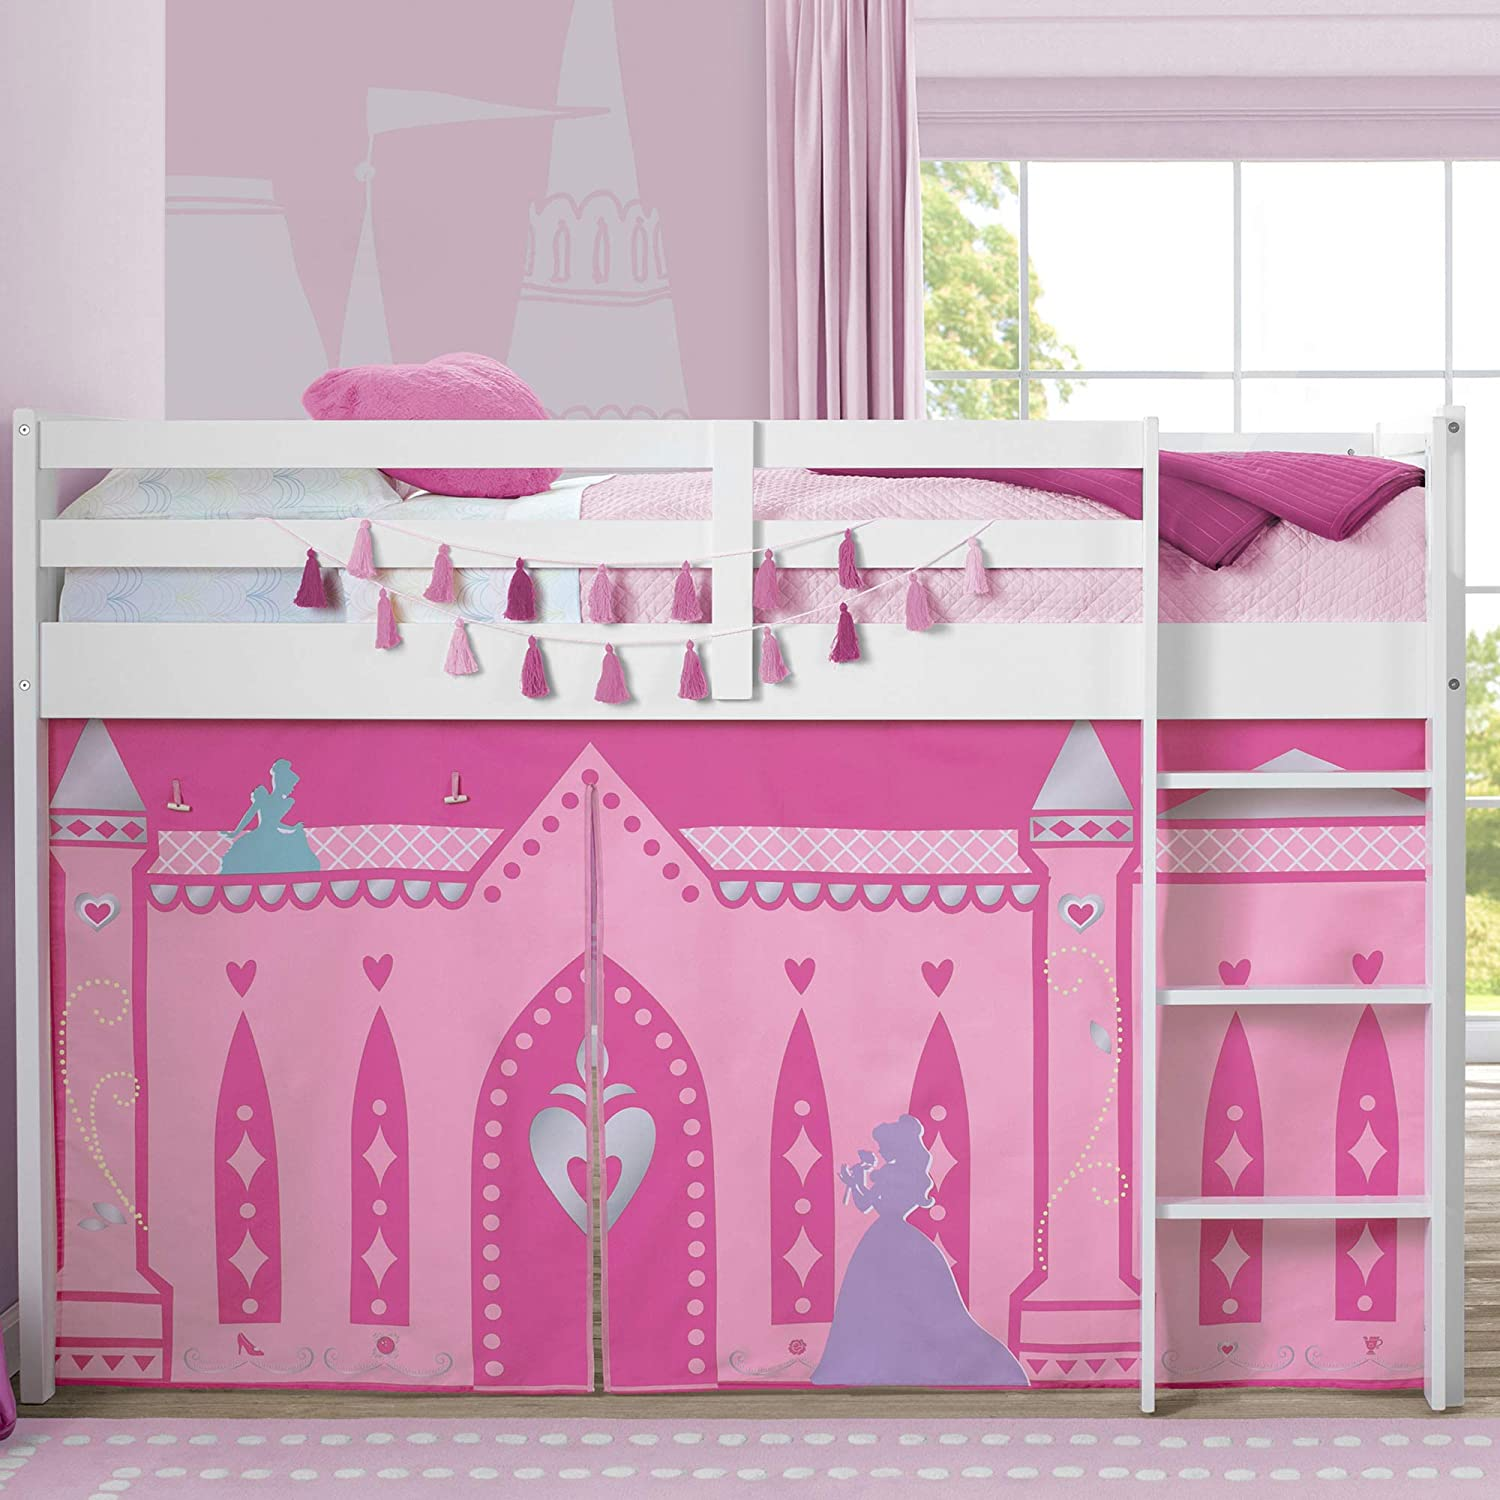 Disney !超美品再入荷品質至上! 人気ブレゼント Princess Loft Bed Tent - Be Set Curtain Twin for Low